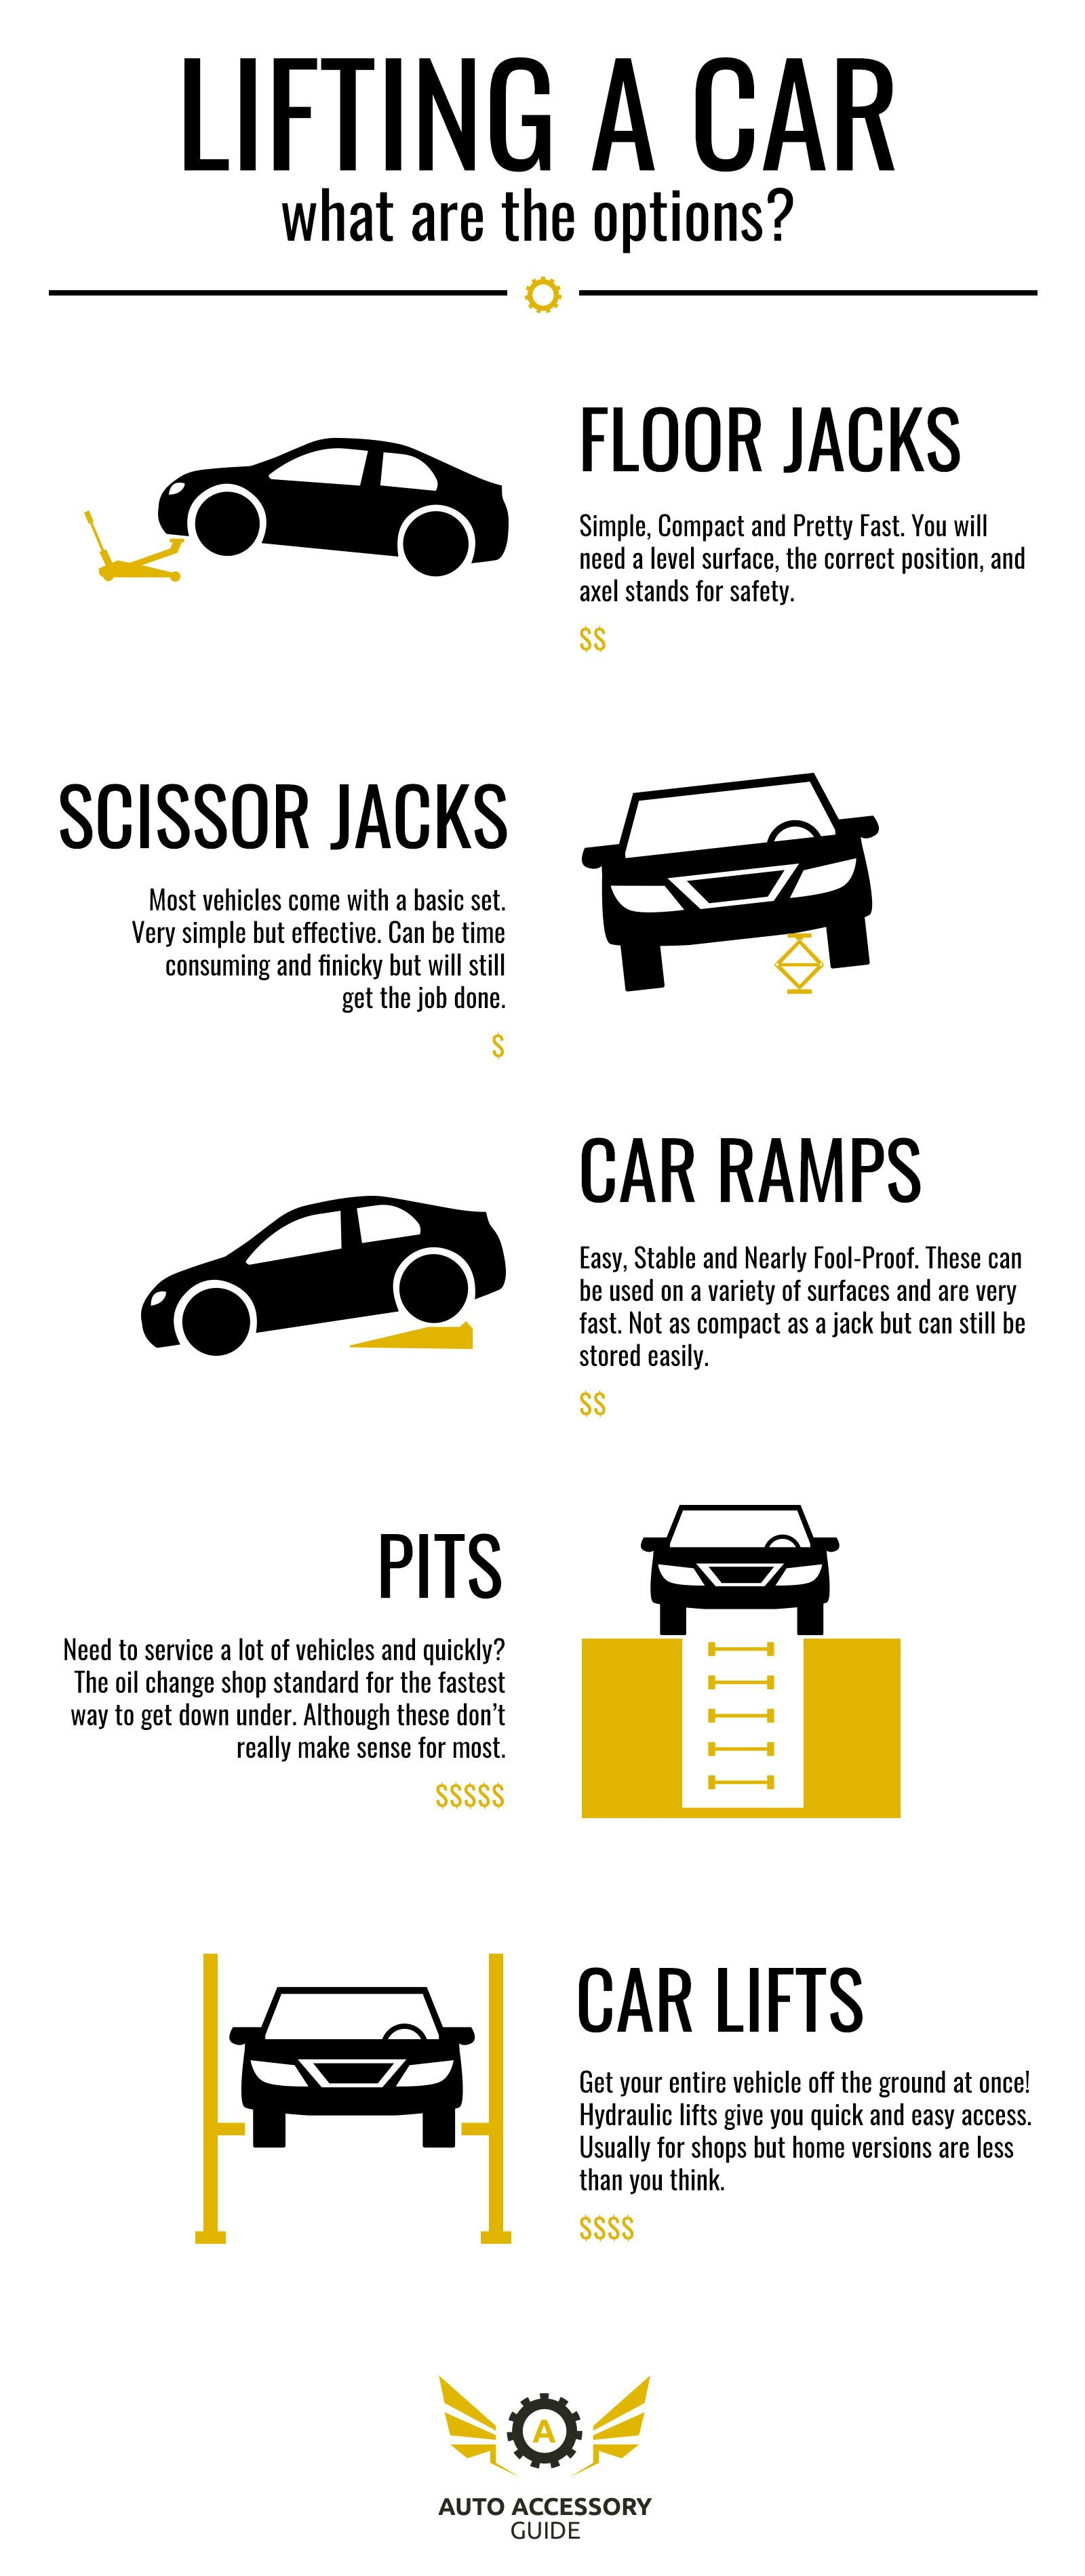 How to lift a vehicle, with a car jack, ramps, pits, or hydraulic lifts.